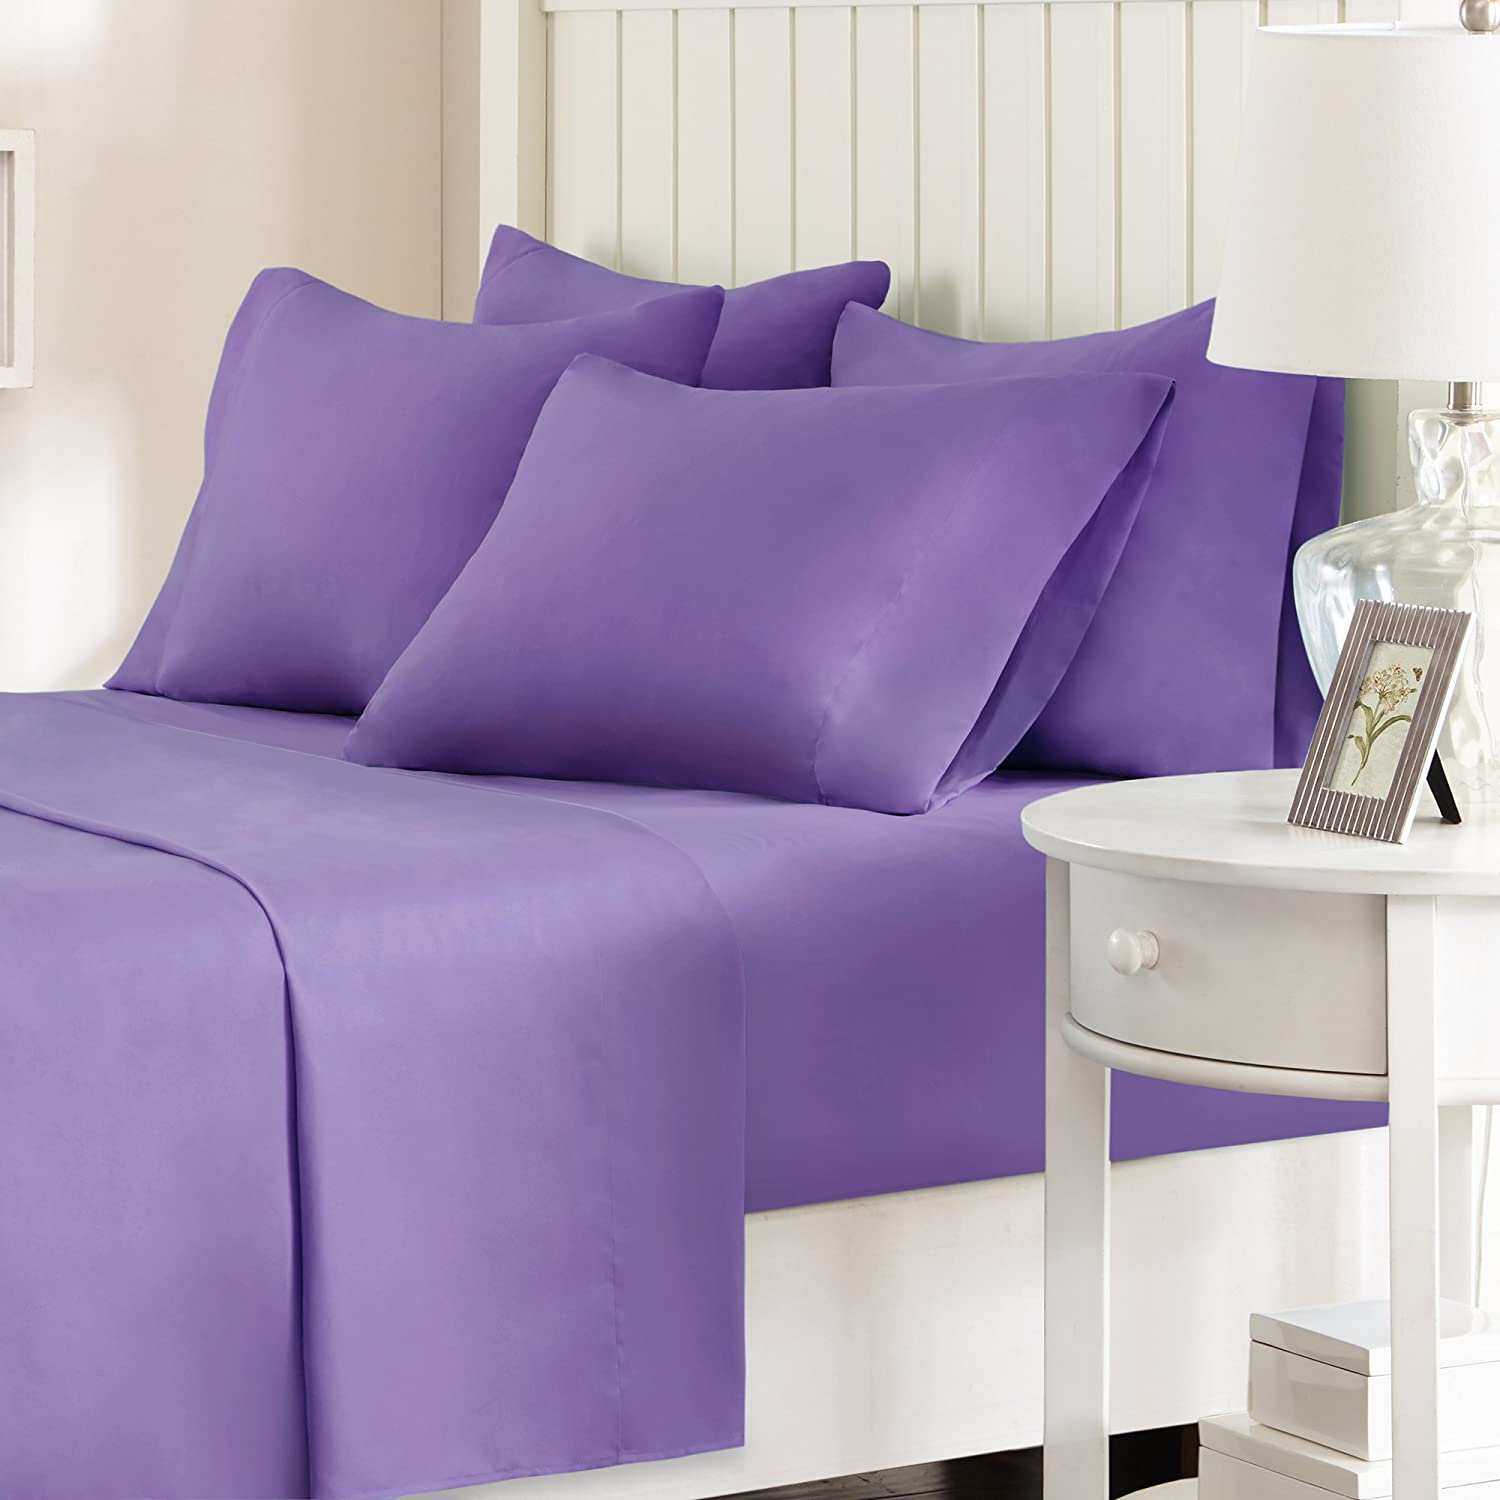 (Queen, Purple) Comfort Spaces Microfiber Sheet Set 6 Piece Queen Size Solid Purple Includes flat sheet, fitted sheet and 4 pillow cases B01N0ZN3EJ クイーン|パープル パープル クイーン